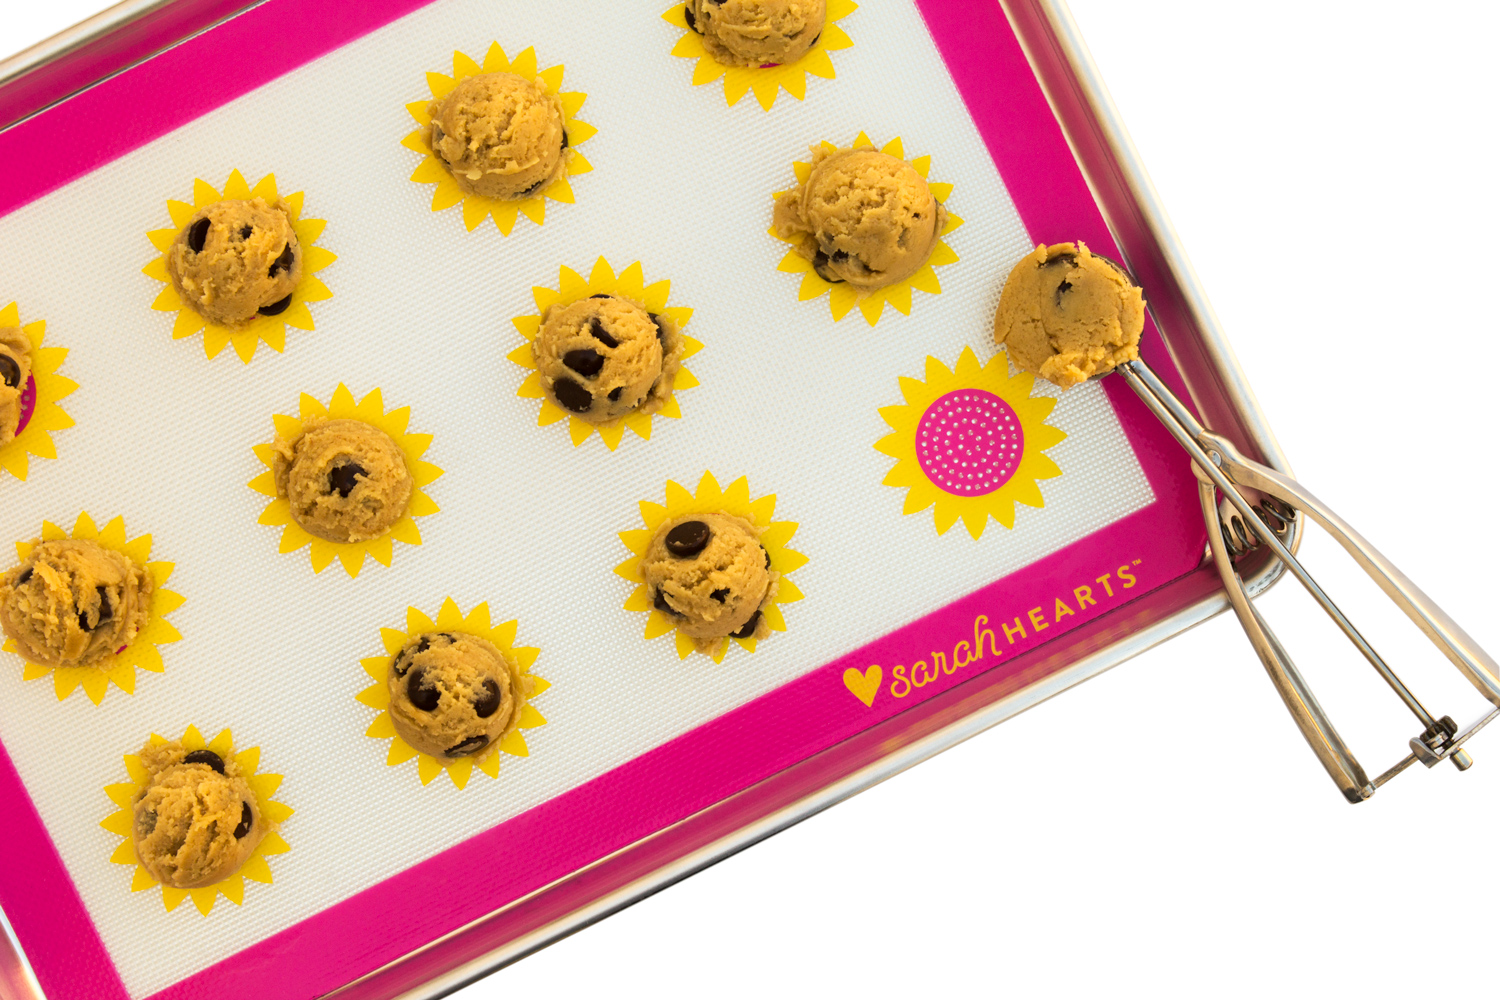 Pink and yellow sunflower non-stick silicone baking mat by Sarah Hearts